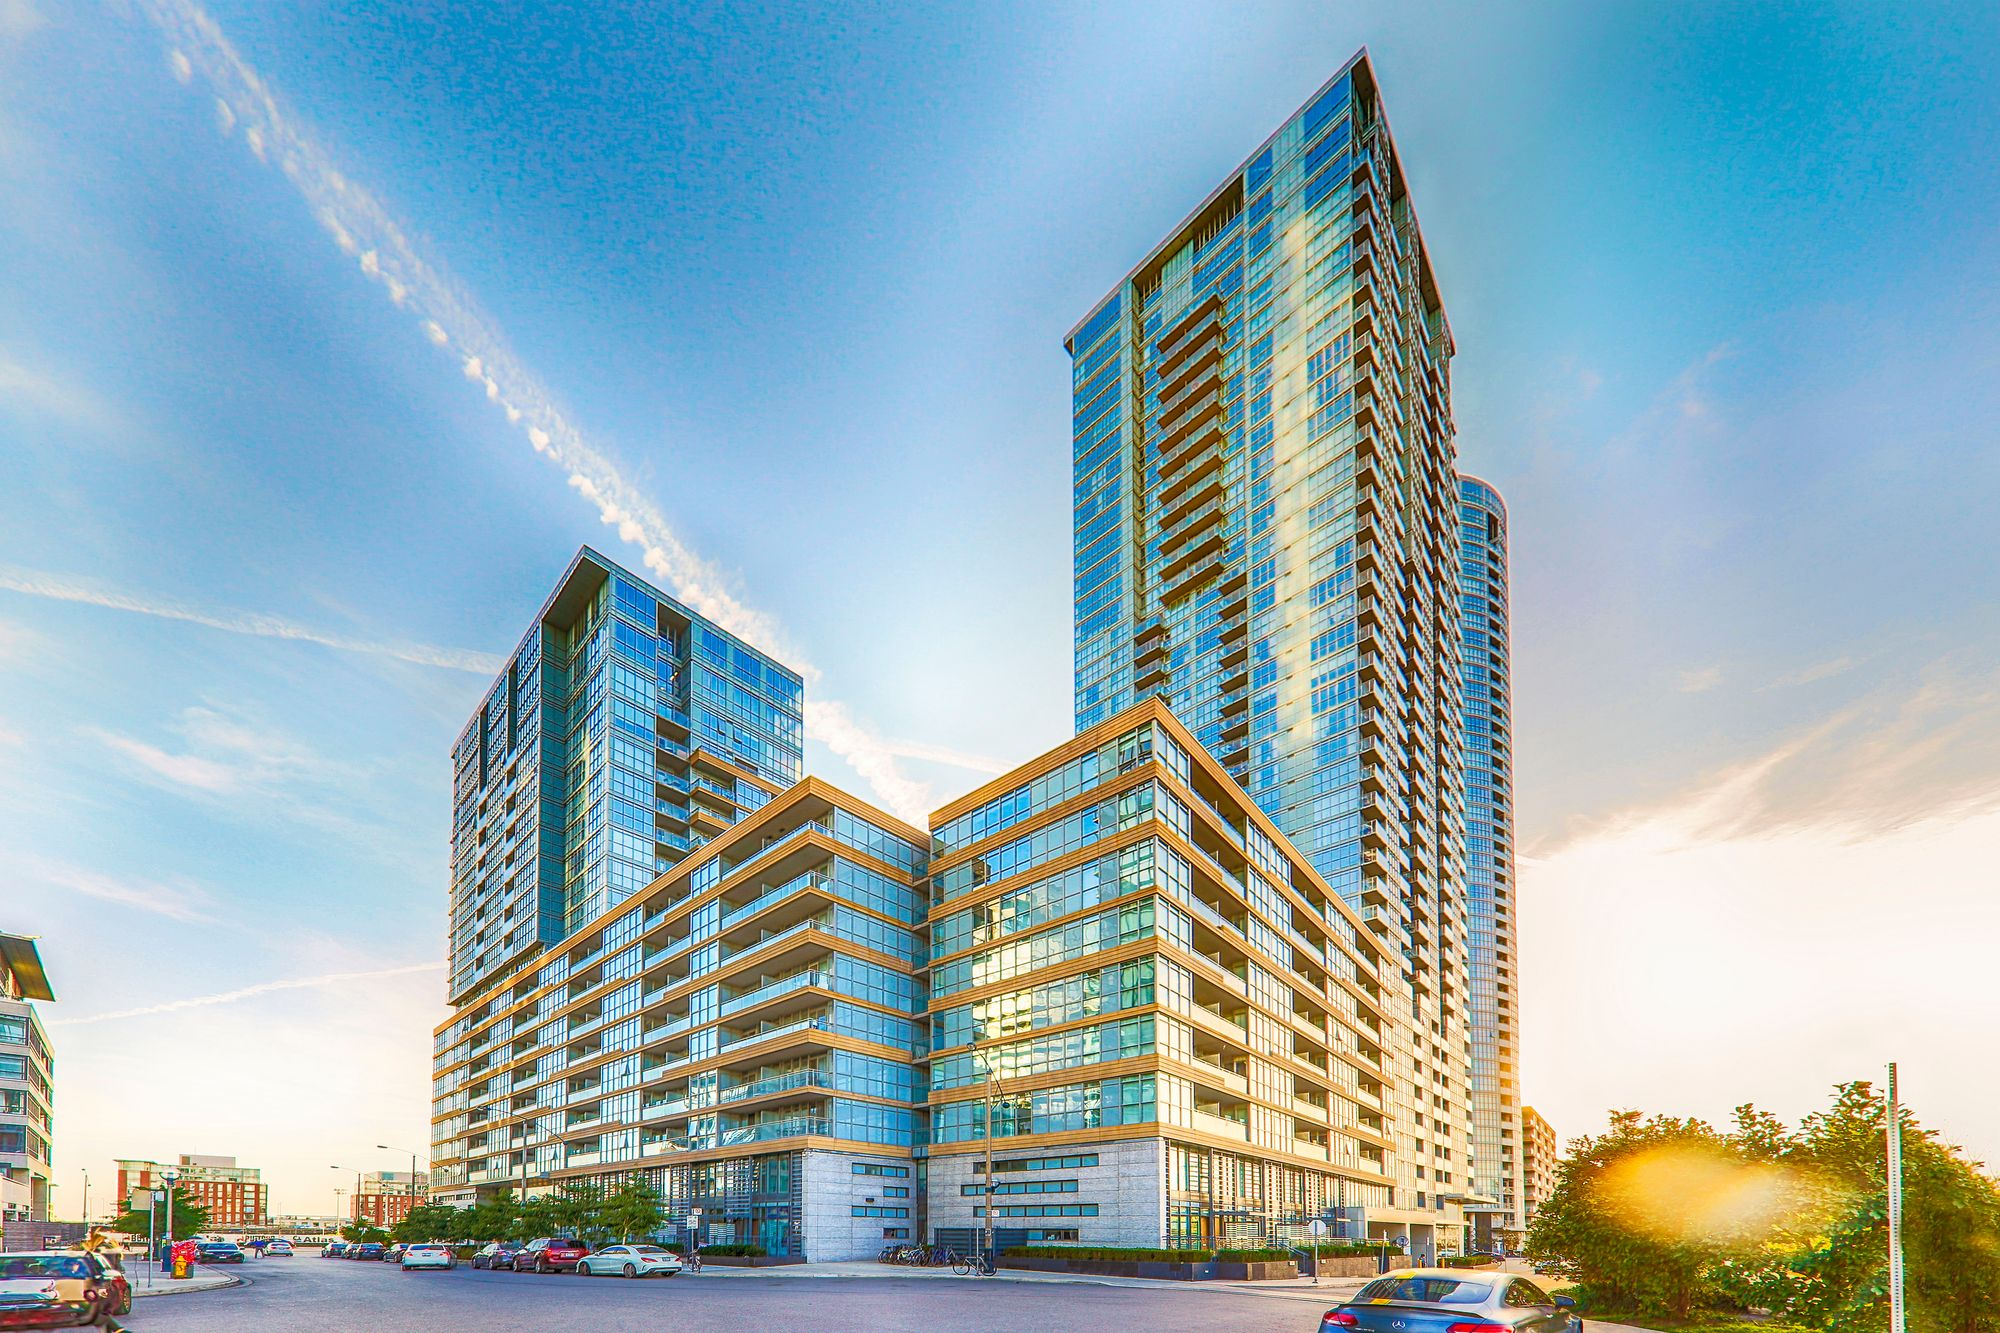 10-26 Capreol Crt. This condo at Parade Condos is located in  Downtown, Toronto - image #2 of 4 by Strata.ca